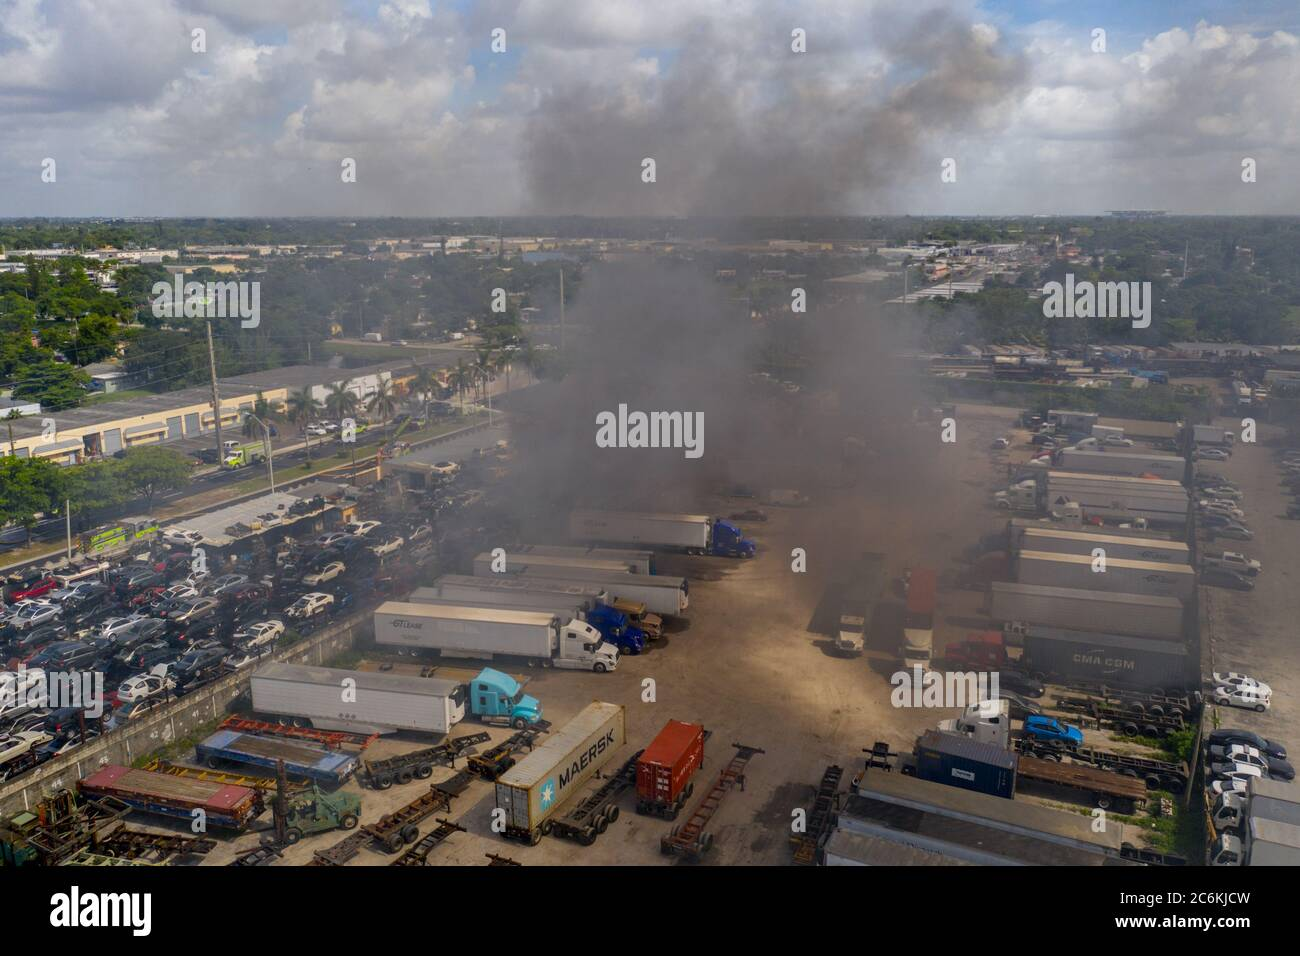 Aerial photo of a fire at a car junk yard firefighters water hosing flames extinguishing Stock Photo